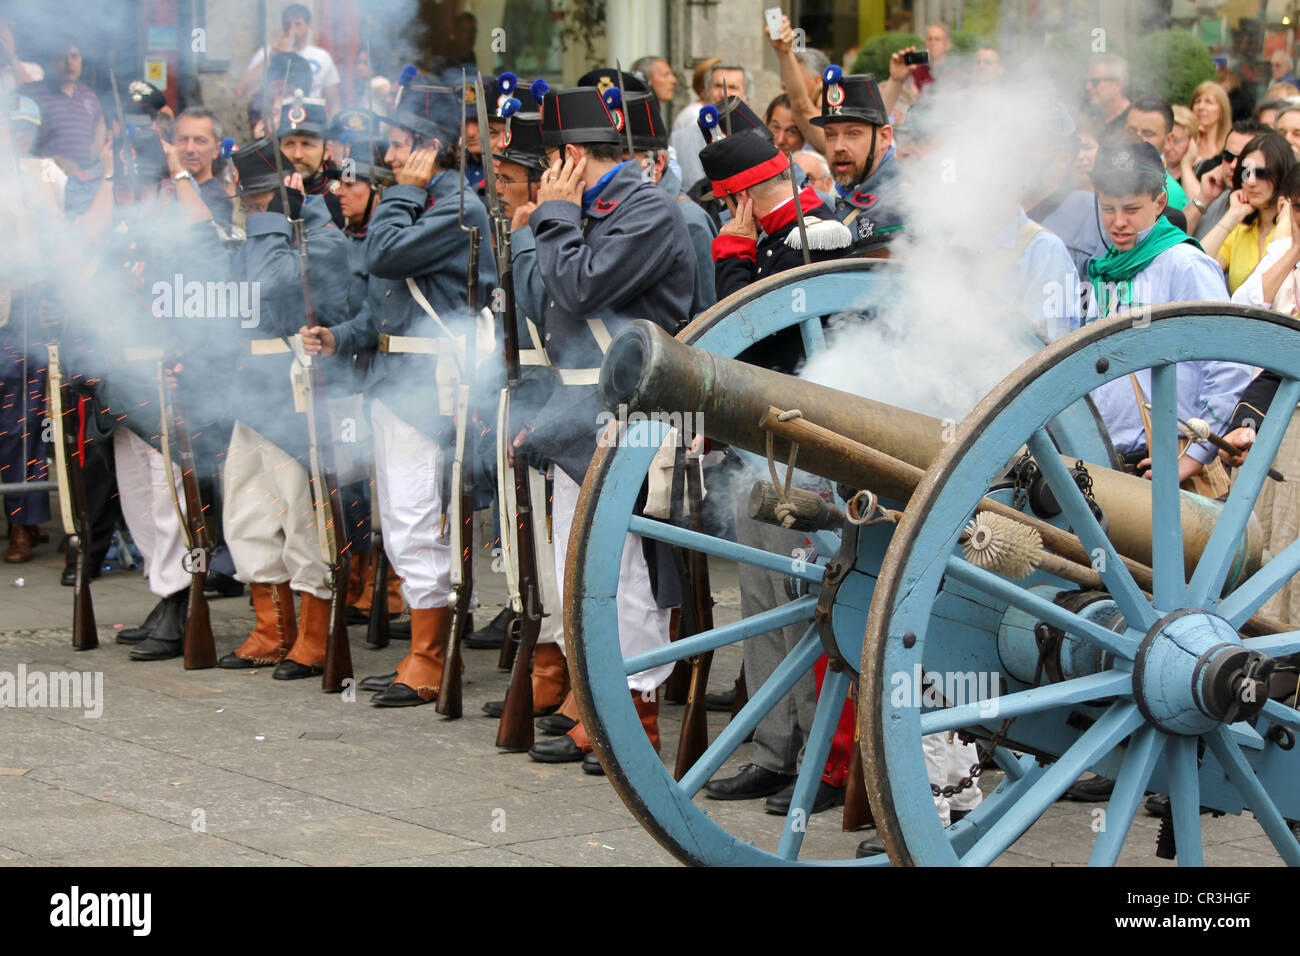 The 153rd anniversary of the 'Battle of Magenta' June 4, 1859 - Stock Image